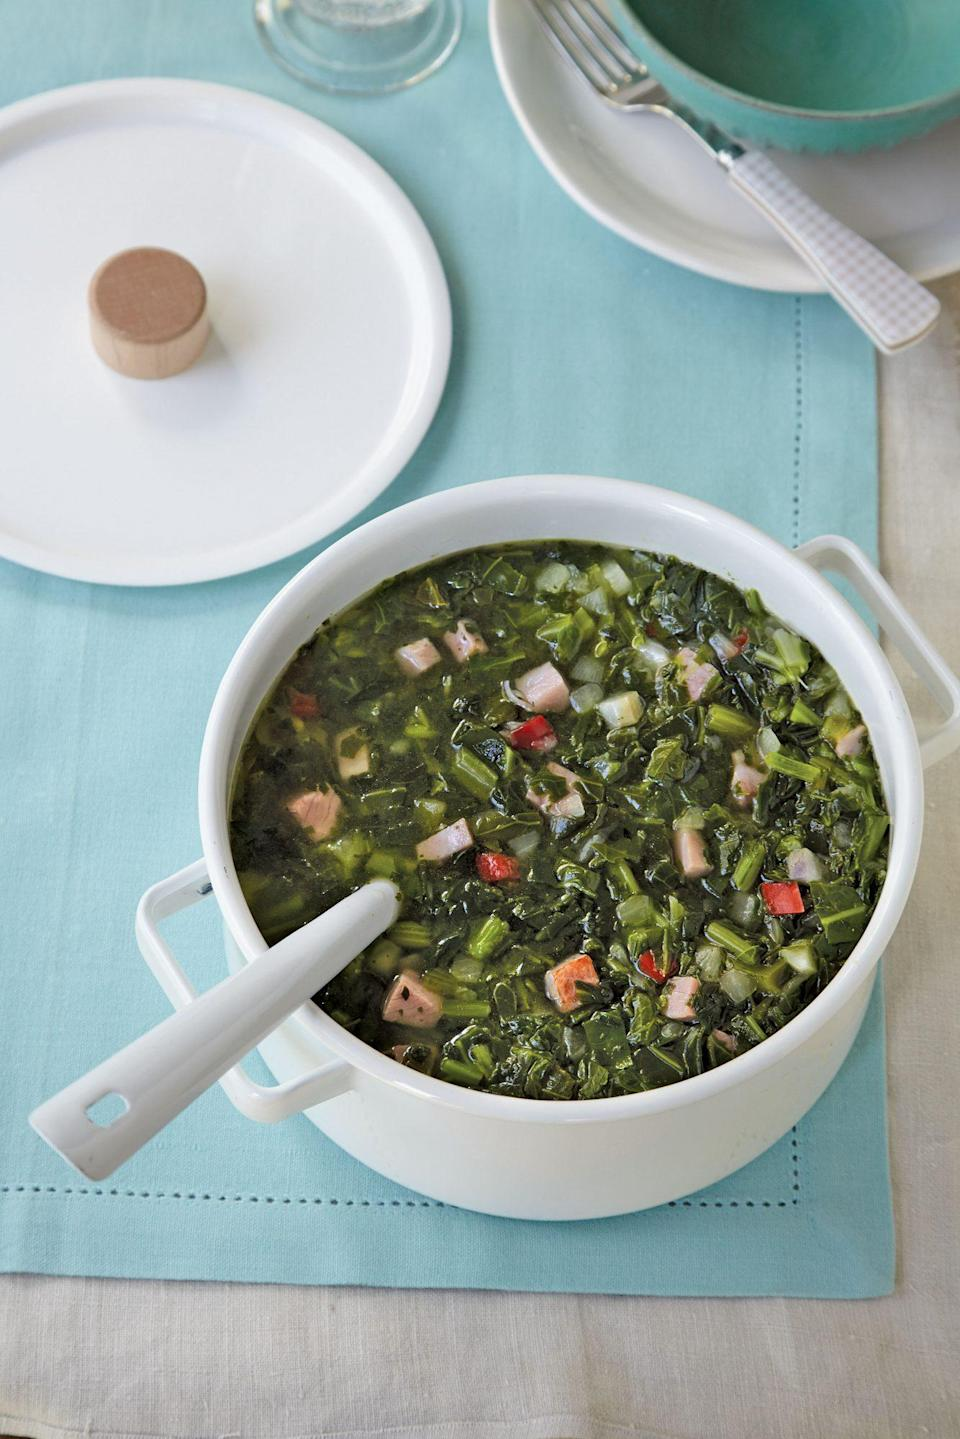 """<p><strong>Recipe: <a href=""""https://www.southernliving.com/recipes/turnip-greens-ham-stew-recipe"""" rel=""""nofollow noopener"""" target=""""_blank"""" data-ylk=""""slk:Turnip Greens-and-Ham Stew"""" class=""""link rapid-noclick-resp"""">Turnip Greens-and-Ham Stew</a></strong></p> <p>From start to finish, this soup only takes 30 minutes and seven ingredients to prepare. It turns two Southern classics, beans and greens, into one comforting bowl of soup.</p>"""